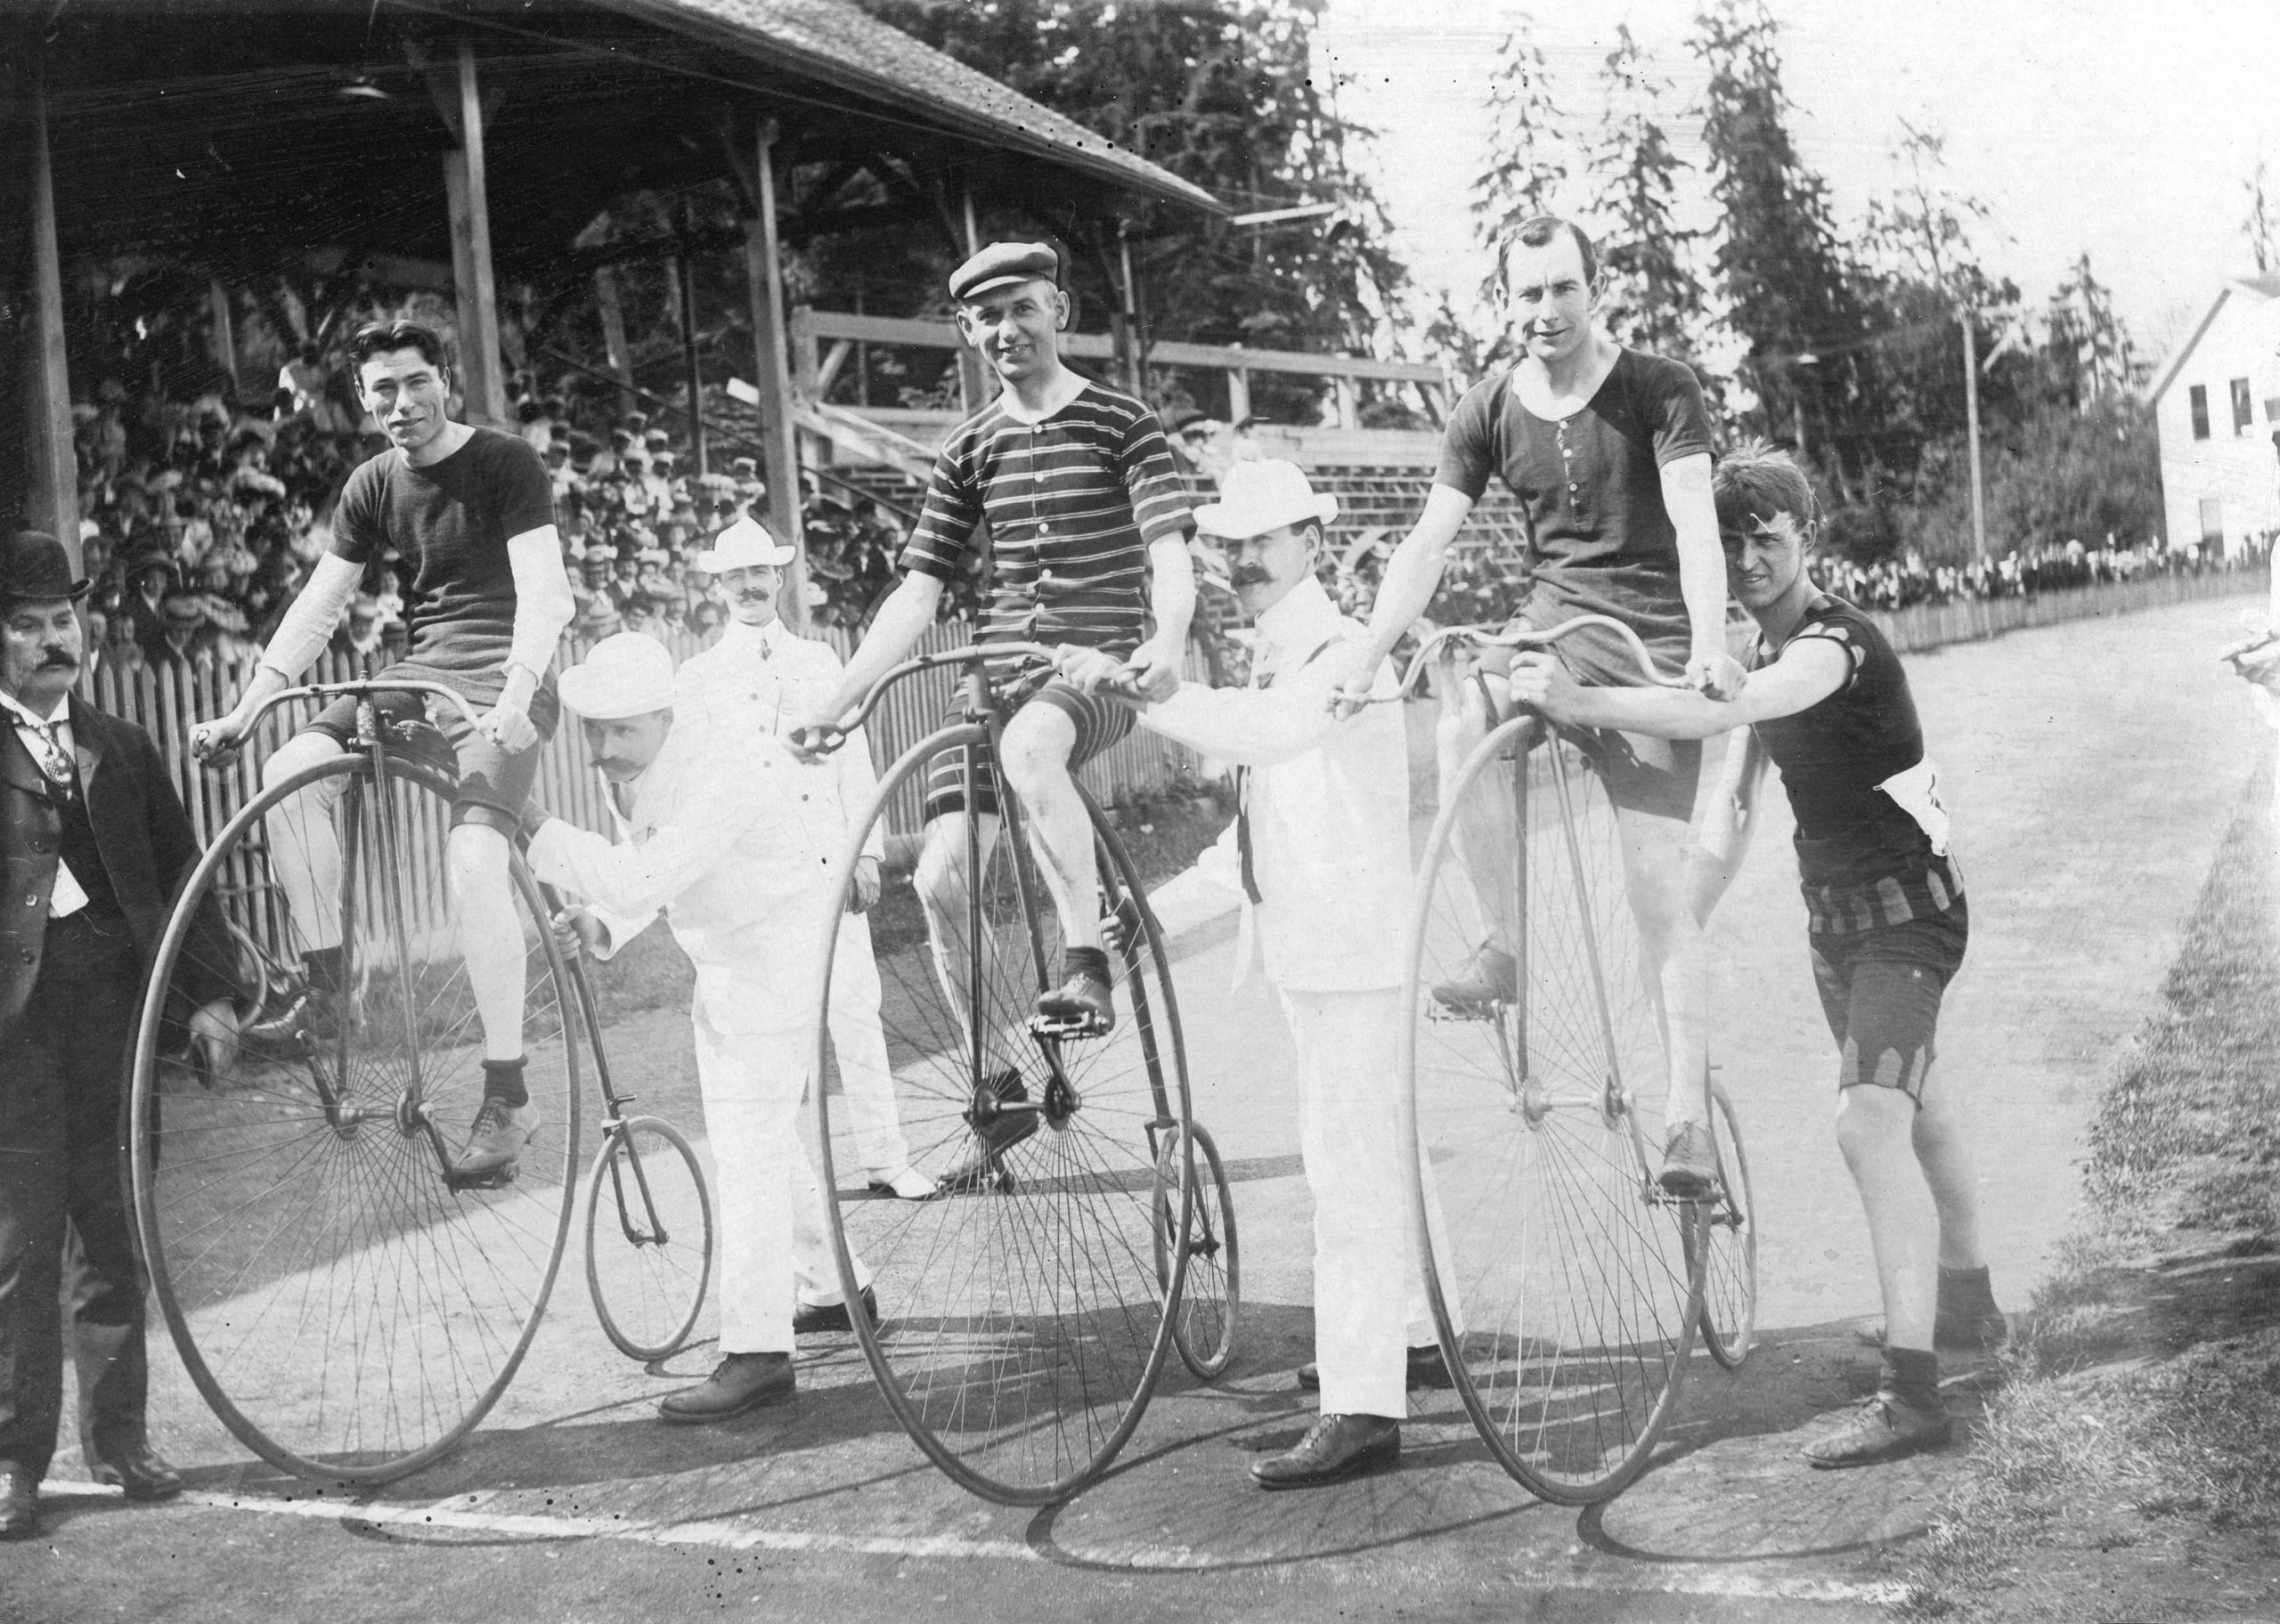 A high wheel bicycle race at Brockton Point. Reference code: AM54-S4-: Sp P57